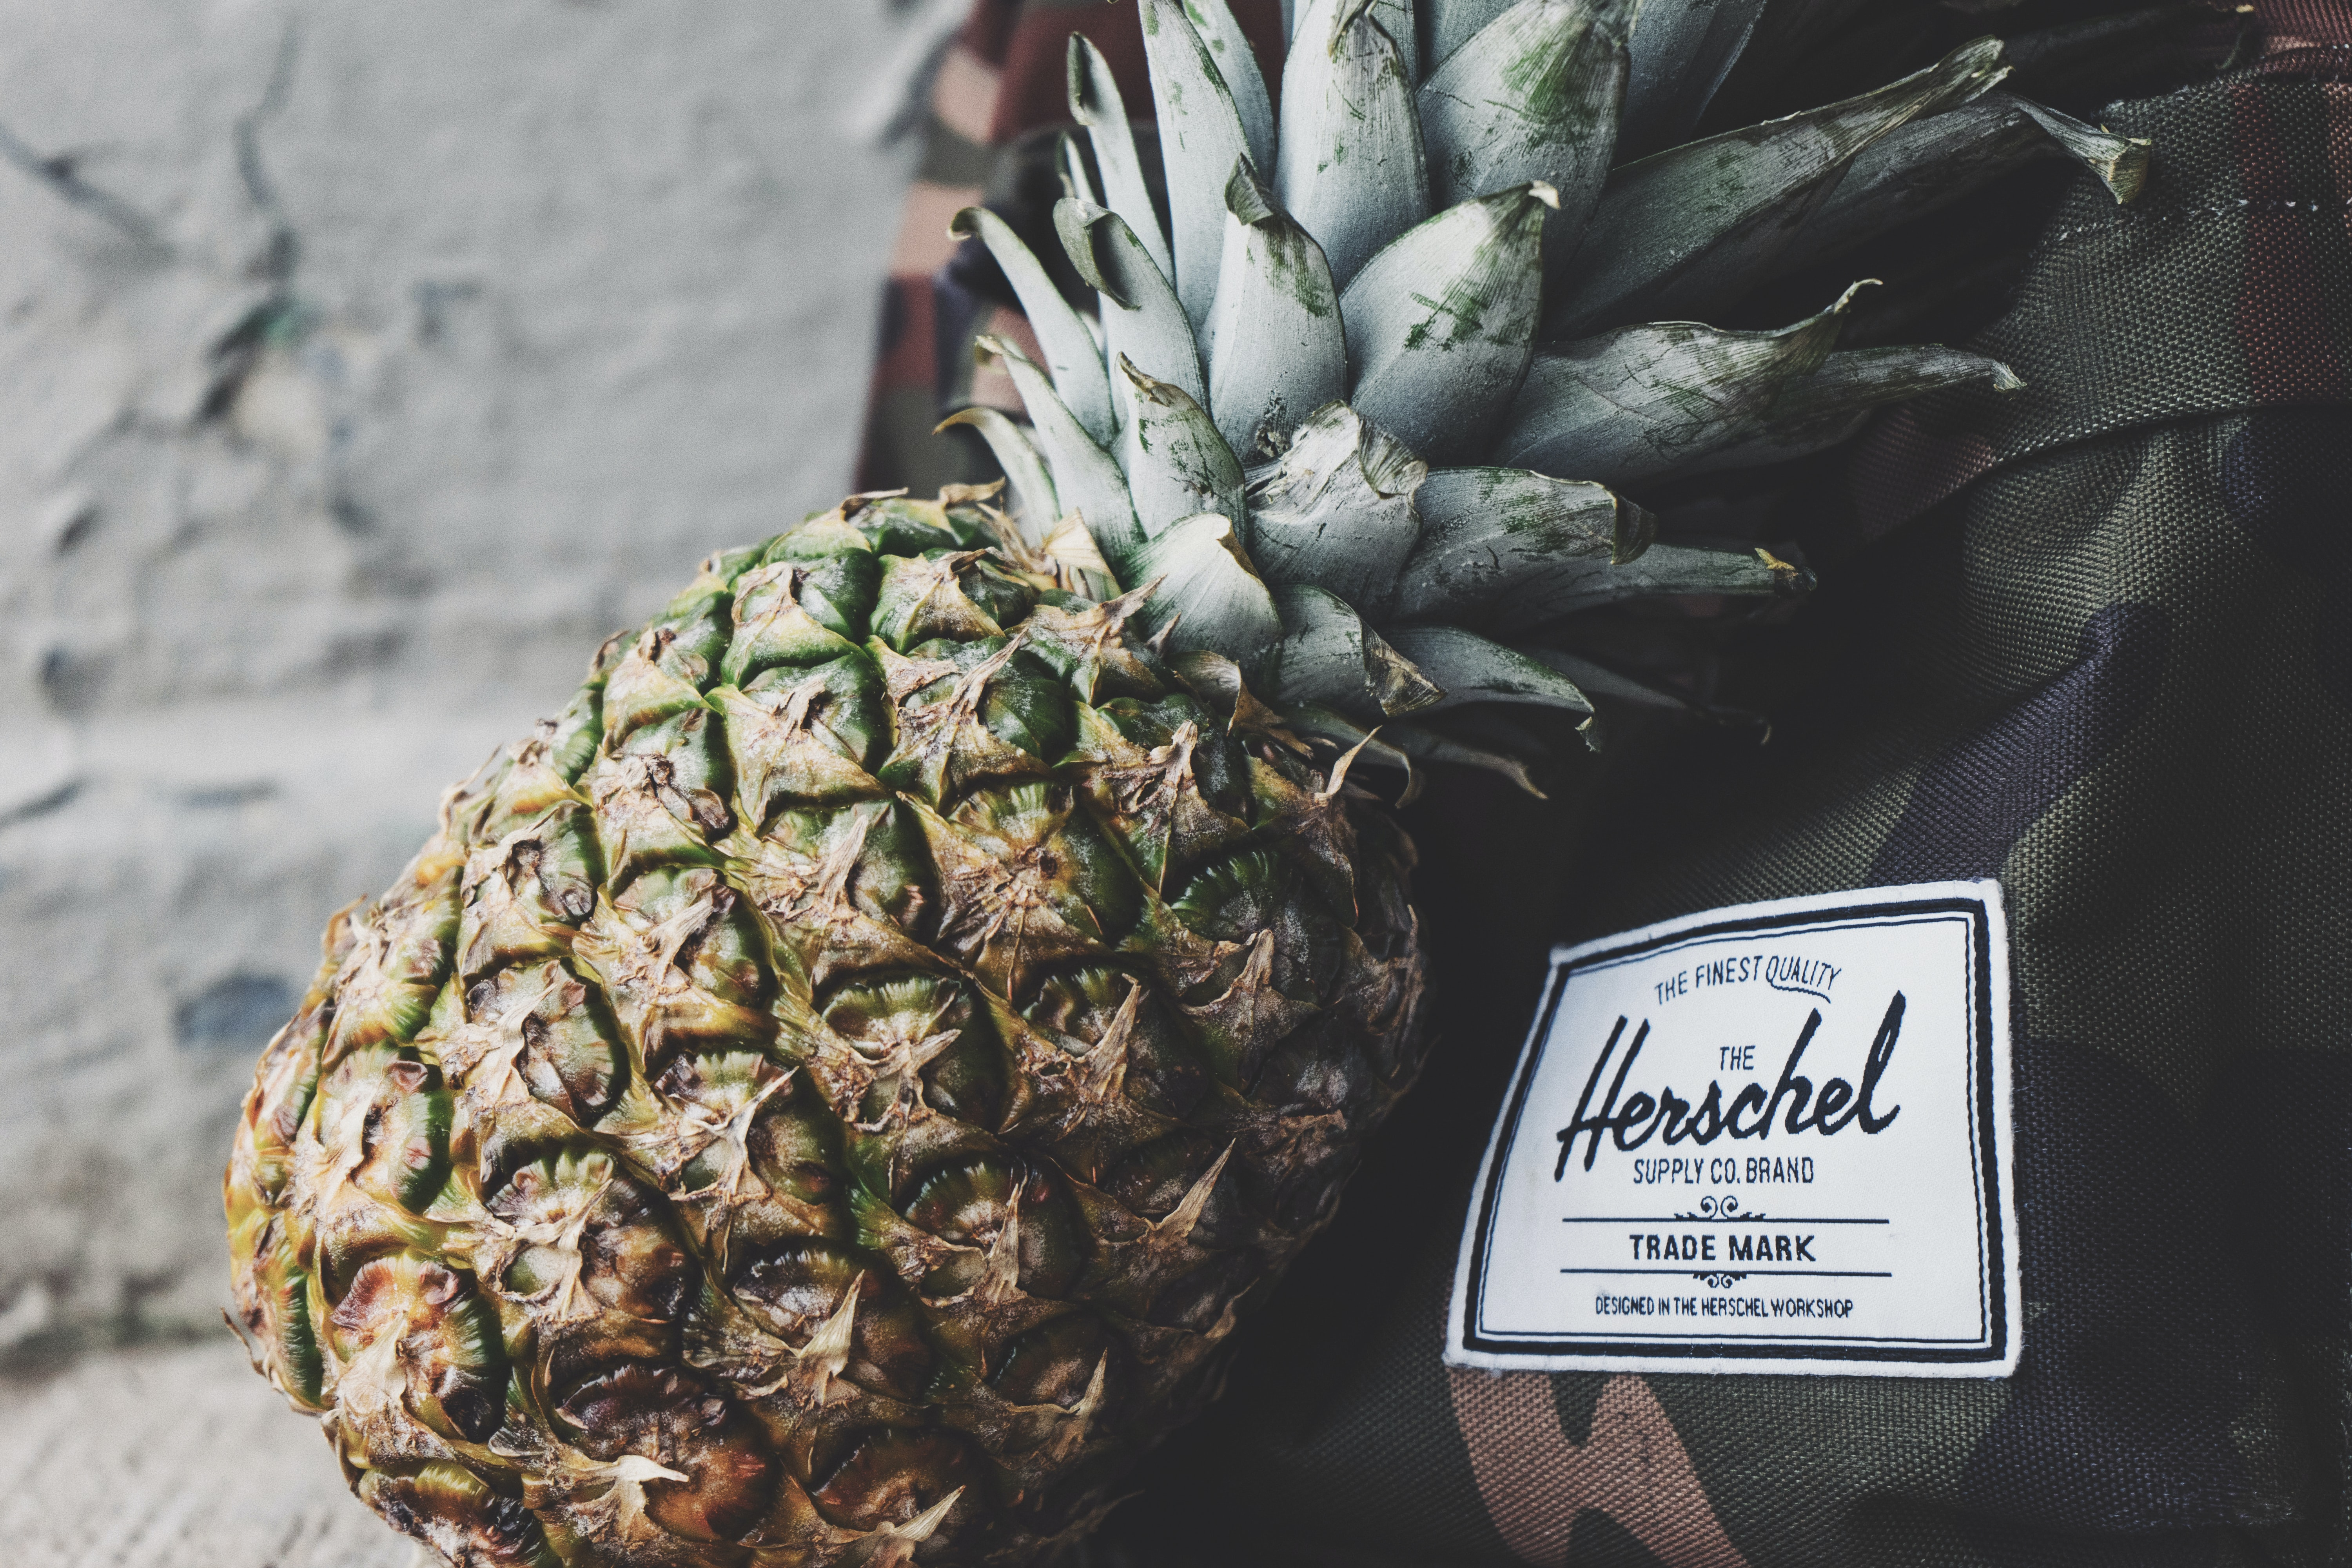 A pineapple leaning against a backpack.